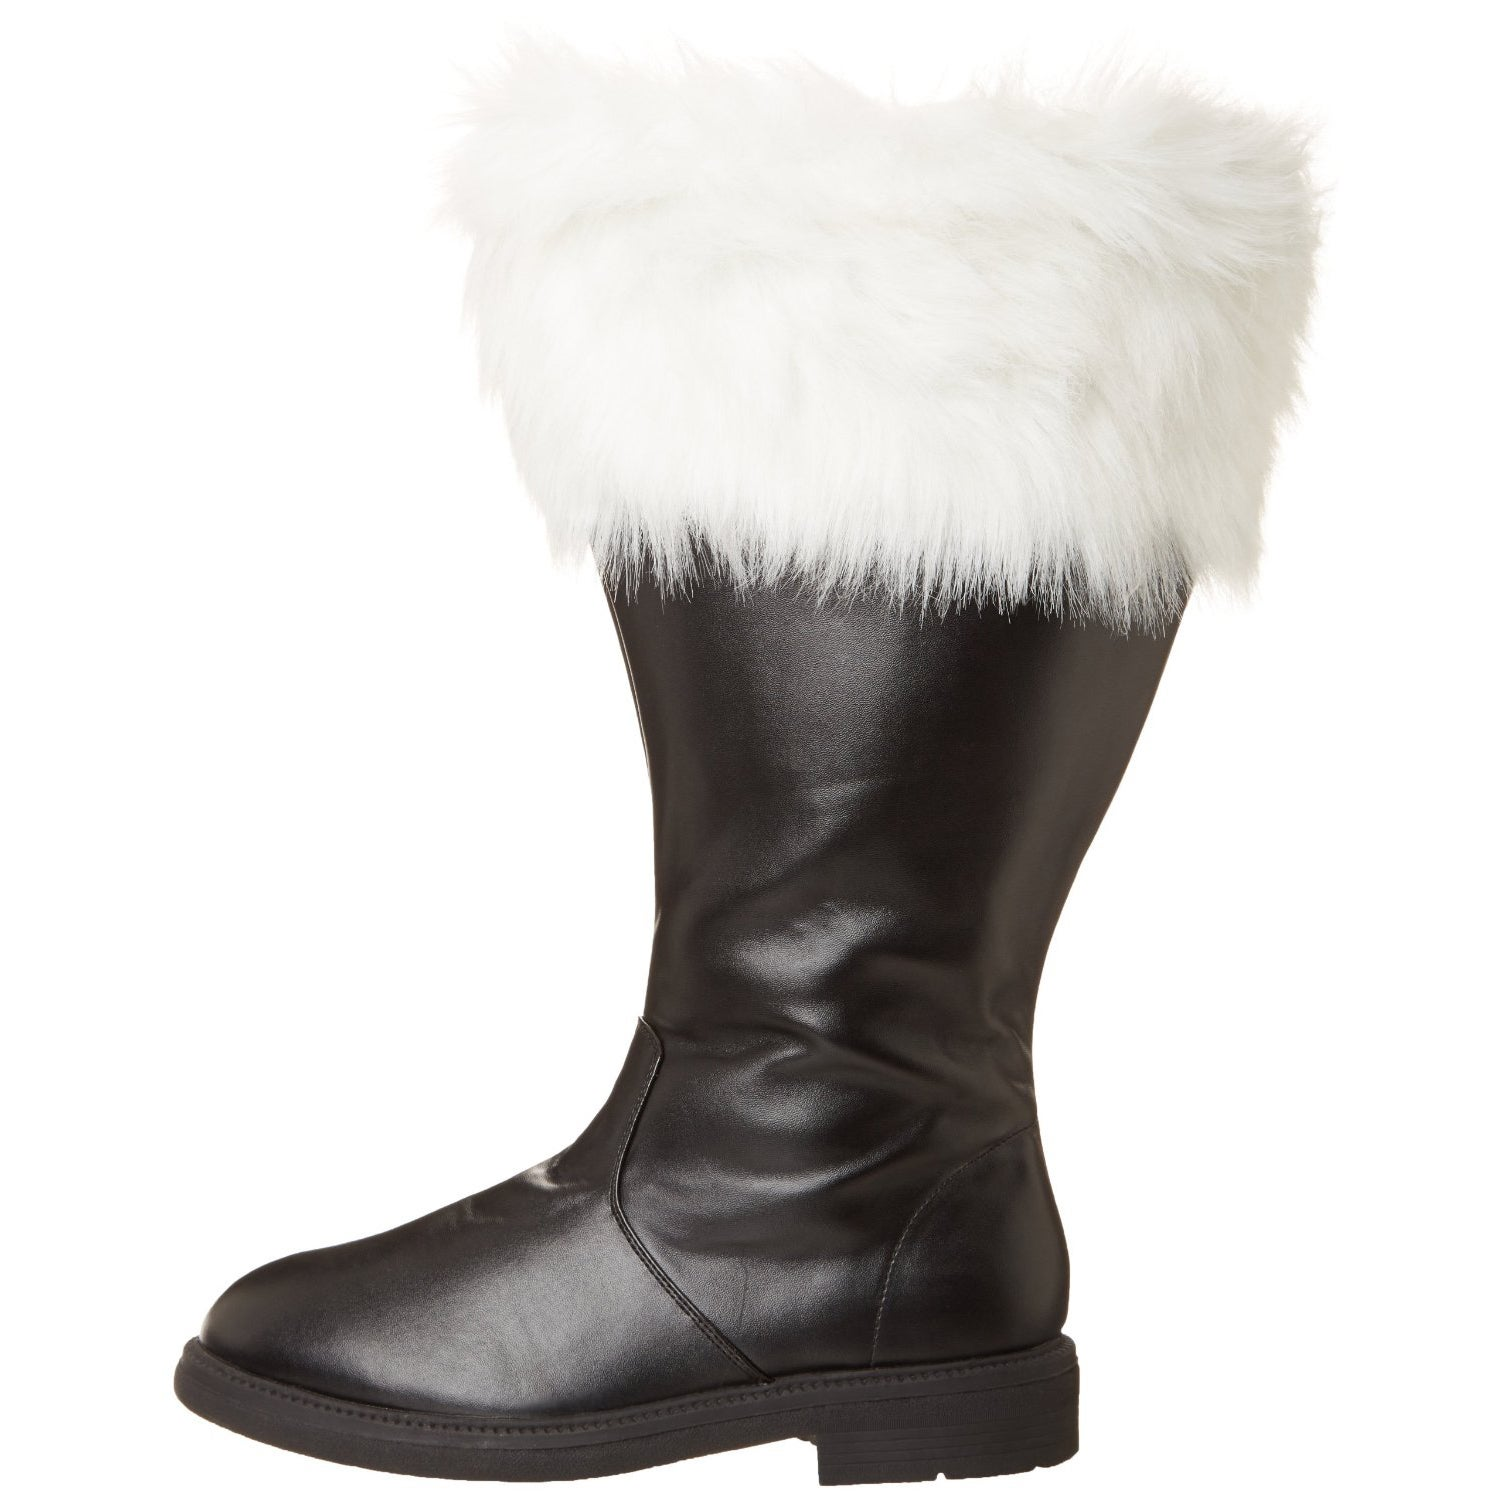 Funtasma Men's 'Santa-106WC' Black/ White Fur Top Boots - Free Shipping  Today - Overstock.com - 15873010